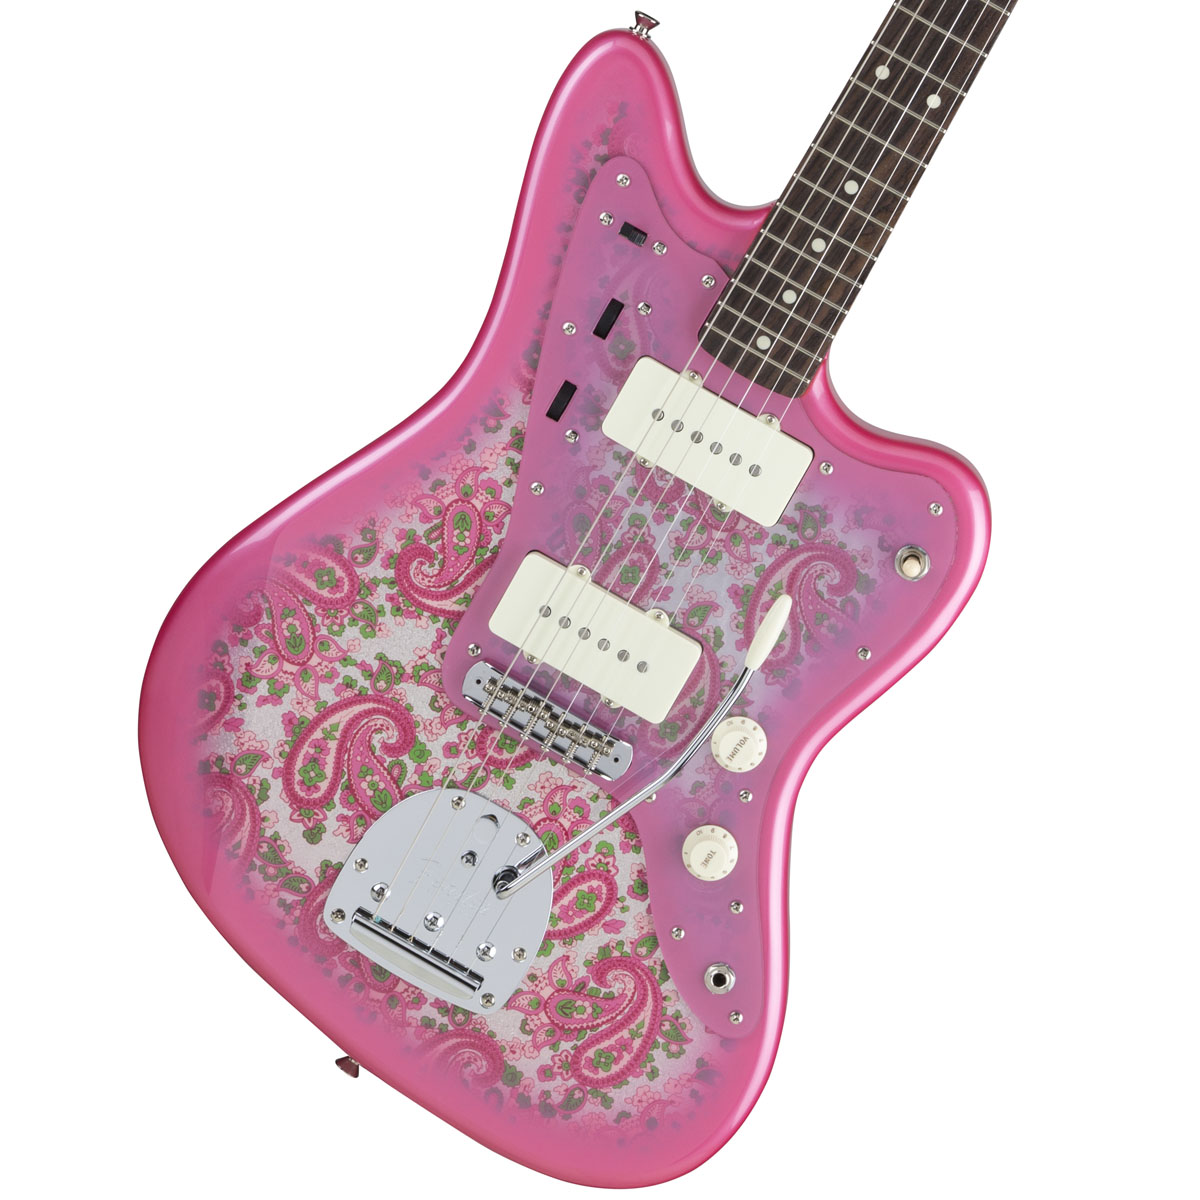 Fender / Made in Japan Traditional 60s Jazzmaster Rosewood Fingerboard Pink Paisley 《カスタムショップのお手入れ用品を進呈/+671038200》